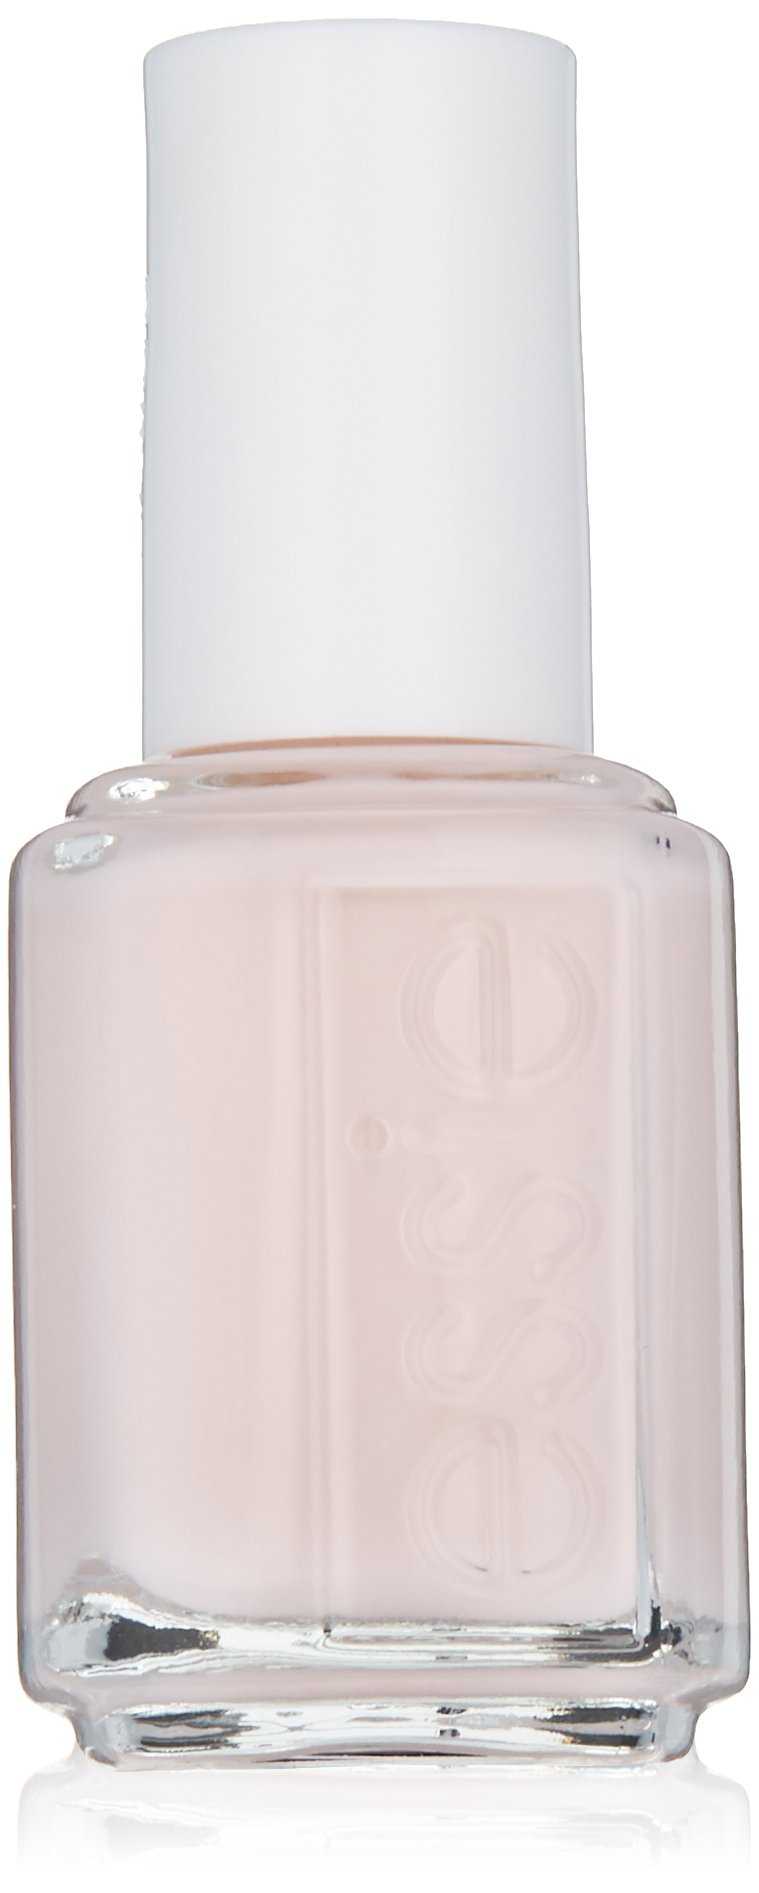 Amazon.com : essie nail polish, minimalistic, pink sheer nail polish ...